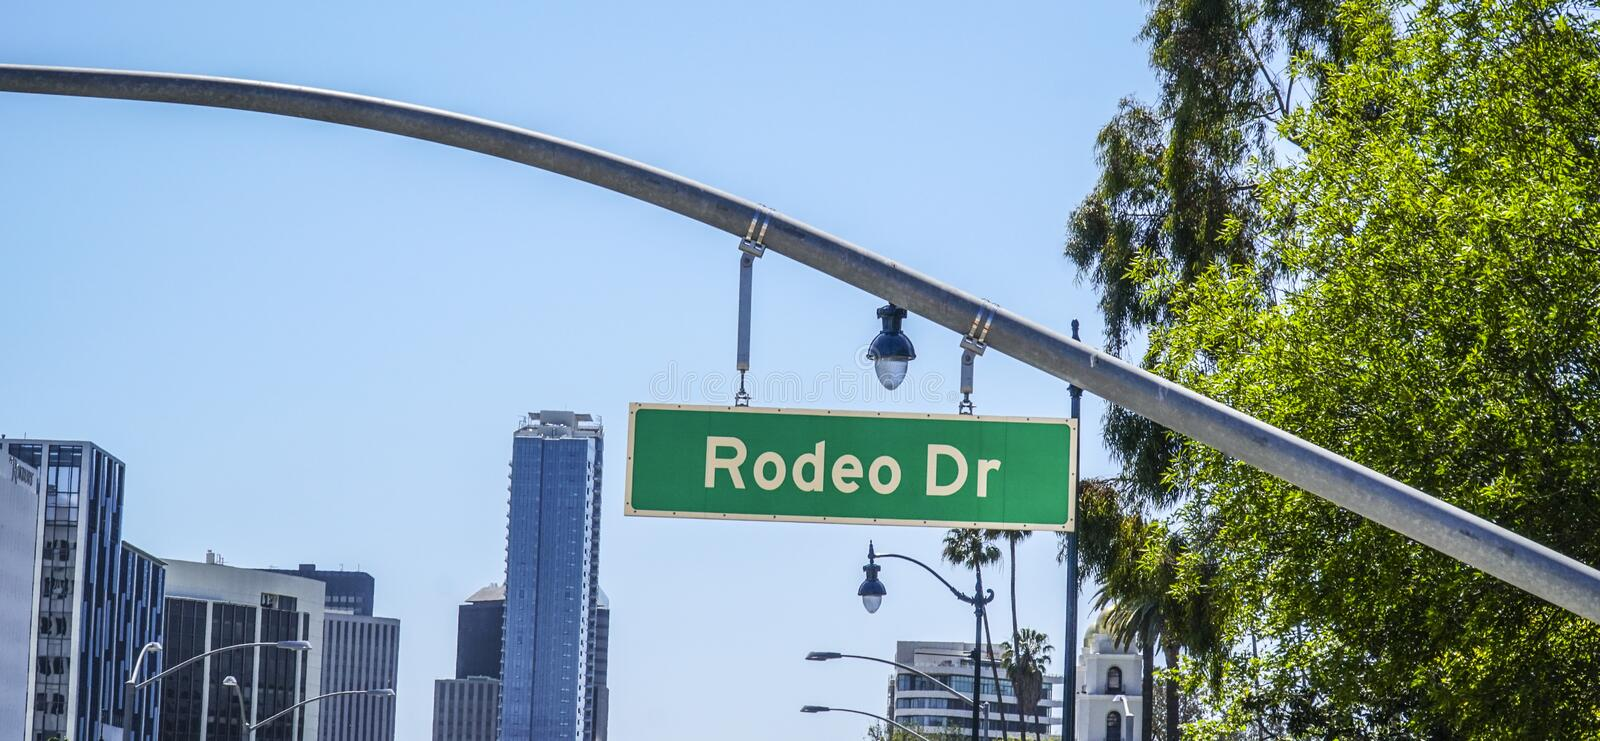 Rodeodrevgatan undertecknar in Beverly Hills - LOS ANGELES - KALIFORNIEN - APRIL 20, 2017 royaltyfria bilder